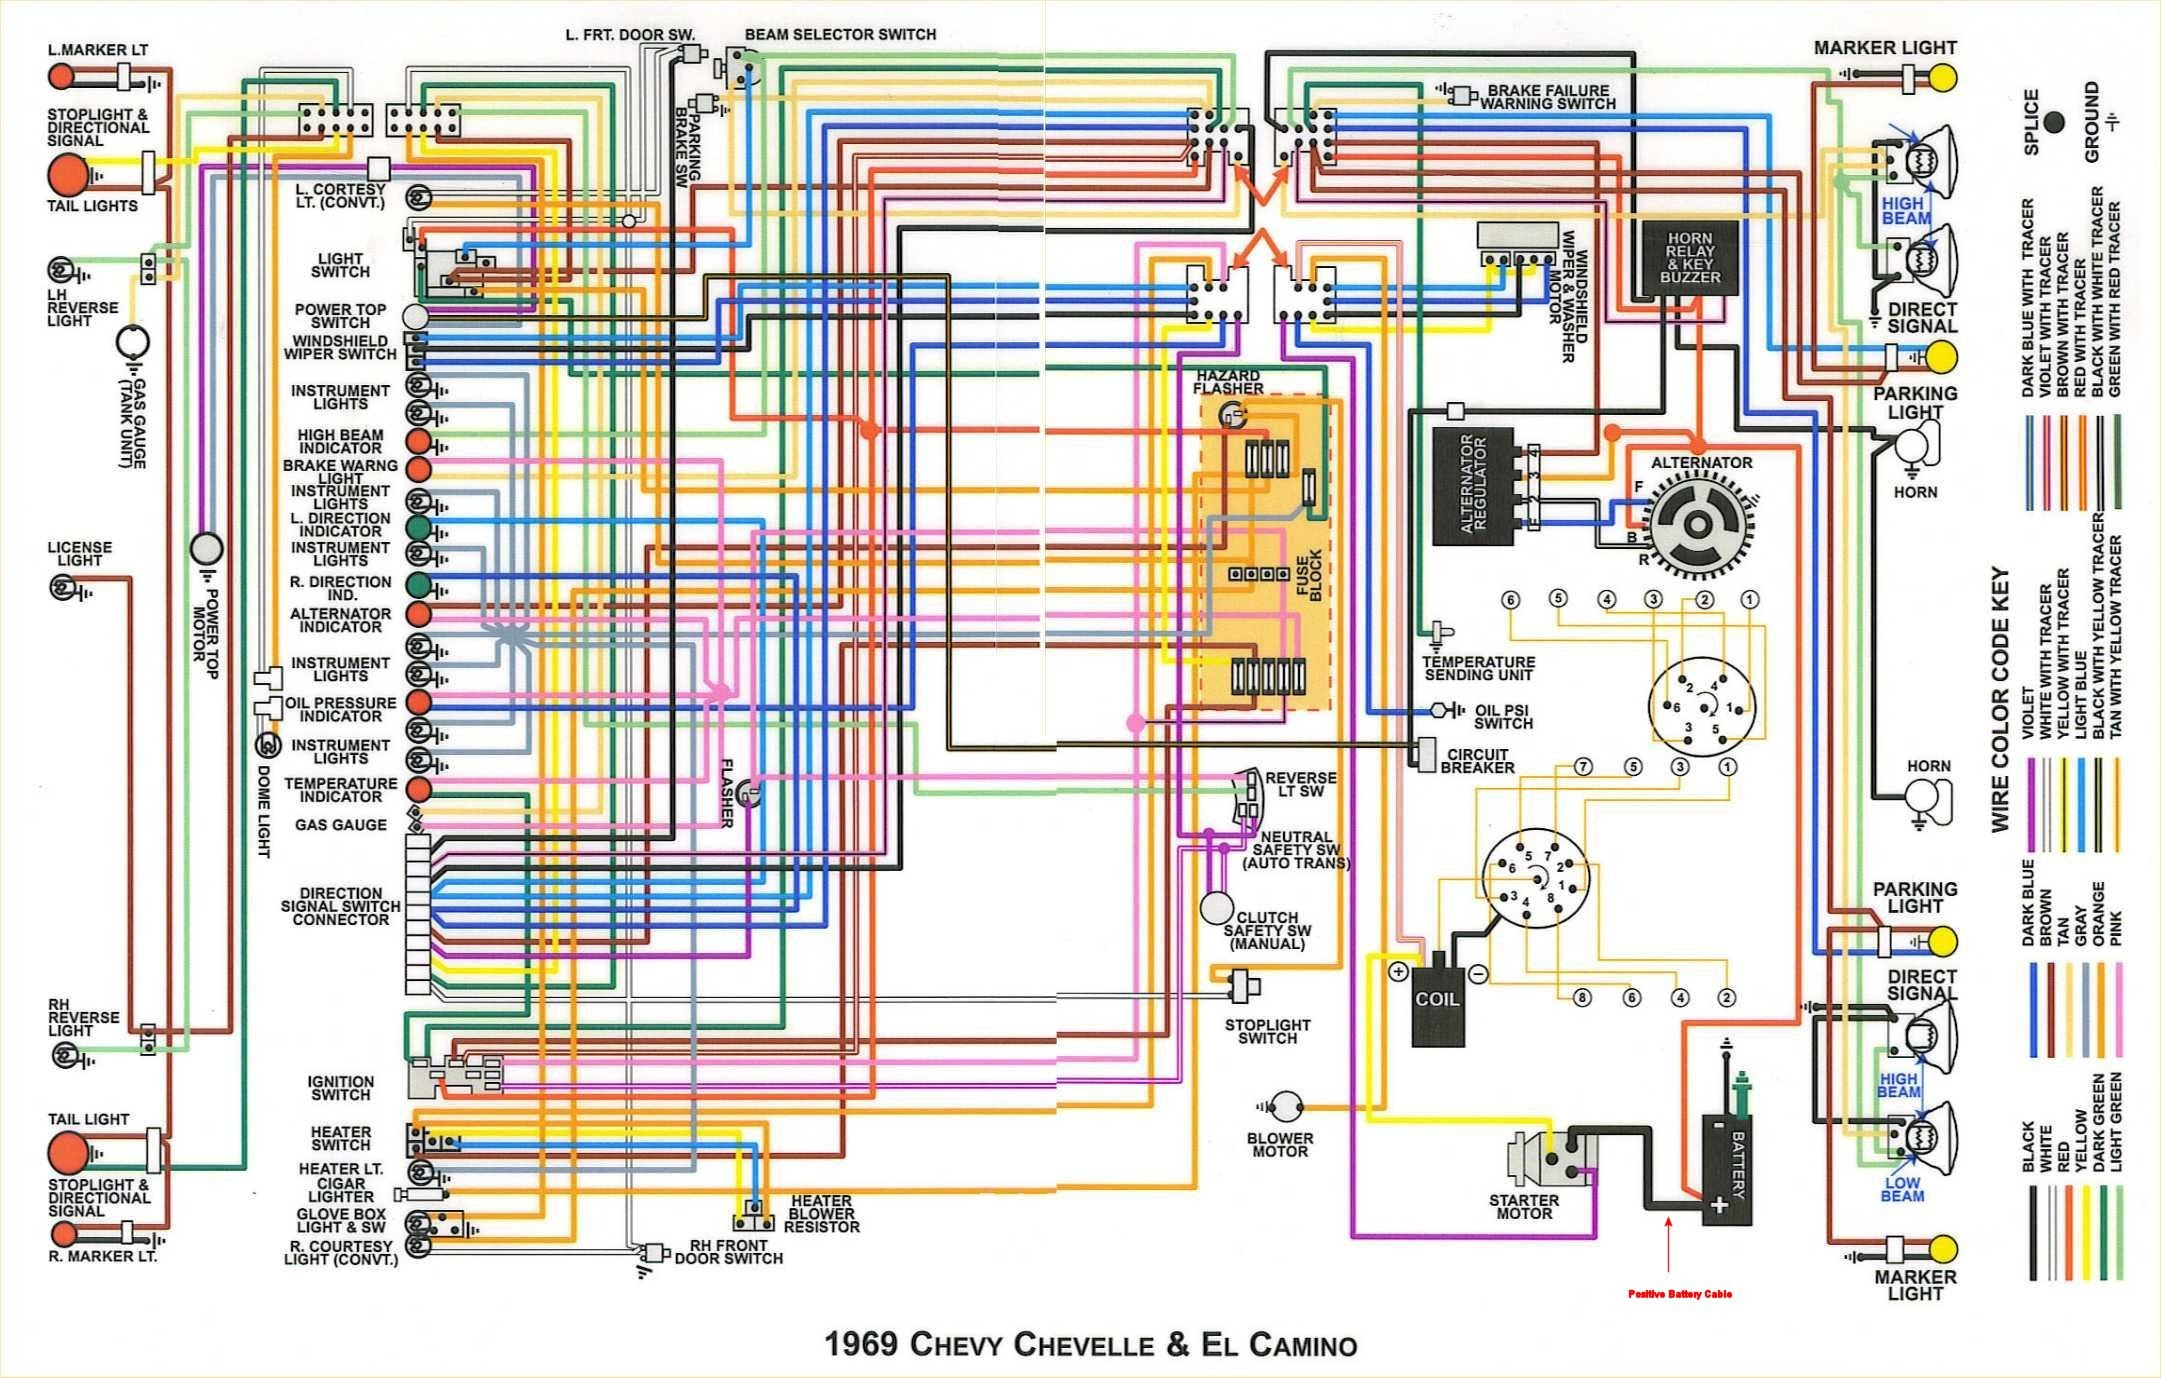 1972 Chevelle Wiring Harness Wiring Diagram Starter Starter Pasticceriagele It